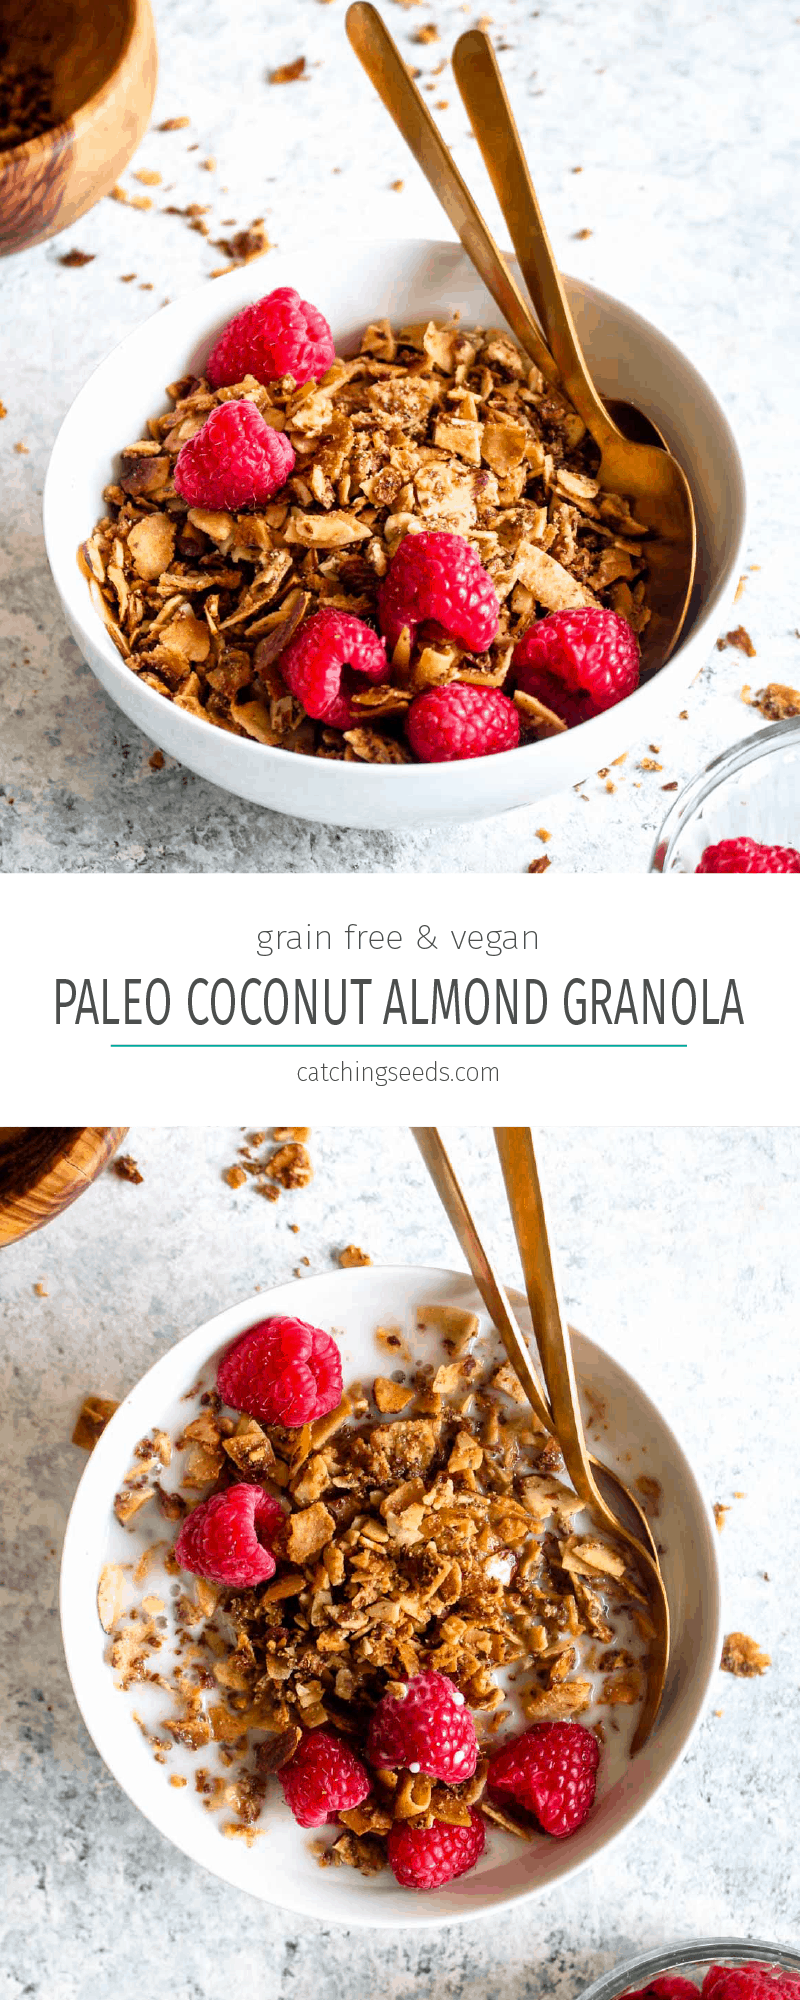 Paleo Coconut Almond Granola is a 20 minute breakfast recipe that is so good, it will make you into a morning person! 8 healthy ingredients are all you need for this easy, grain-free, and vegan recipe. Use it to top yogurt and smoothies at brunch, or eat it as a cereal. | CatcingSeeds.com